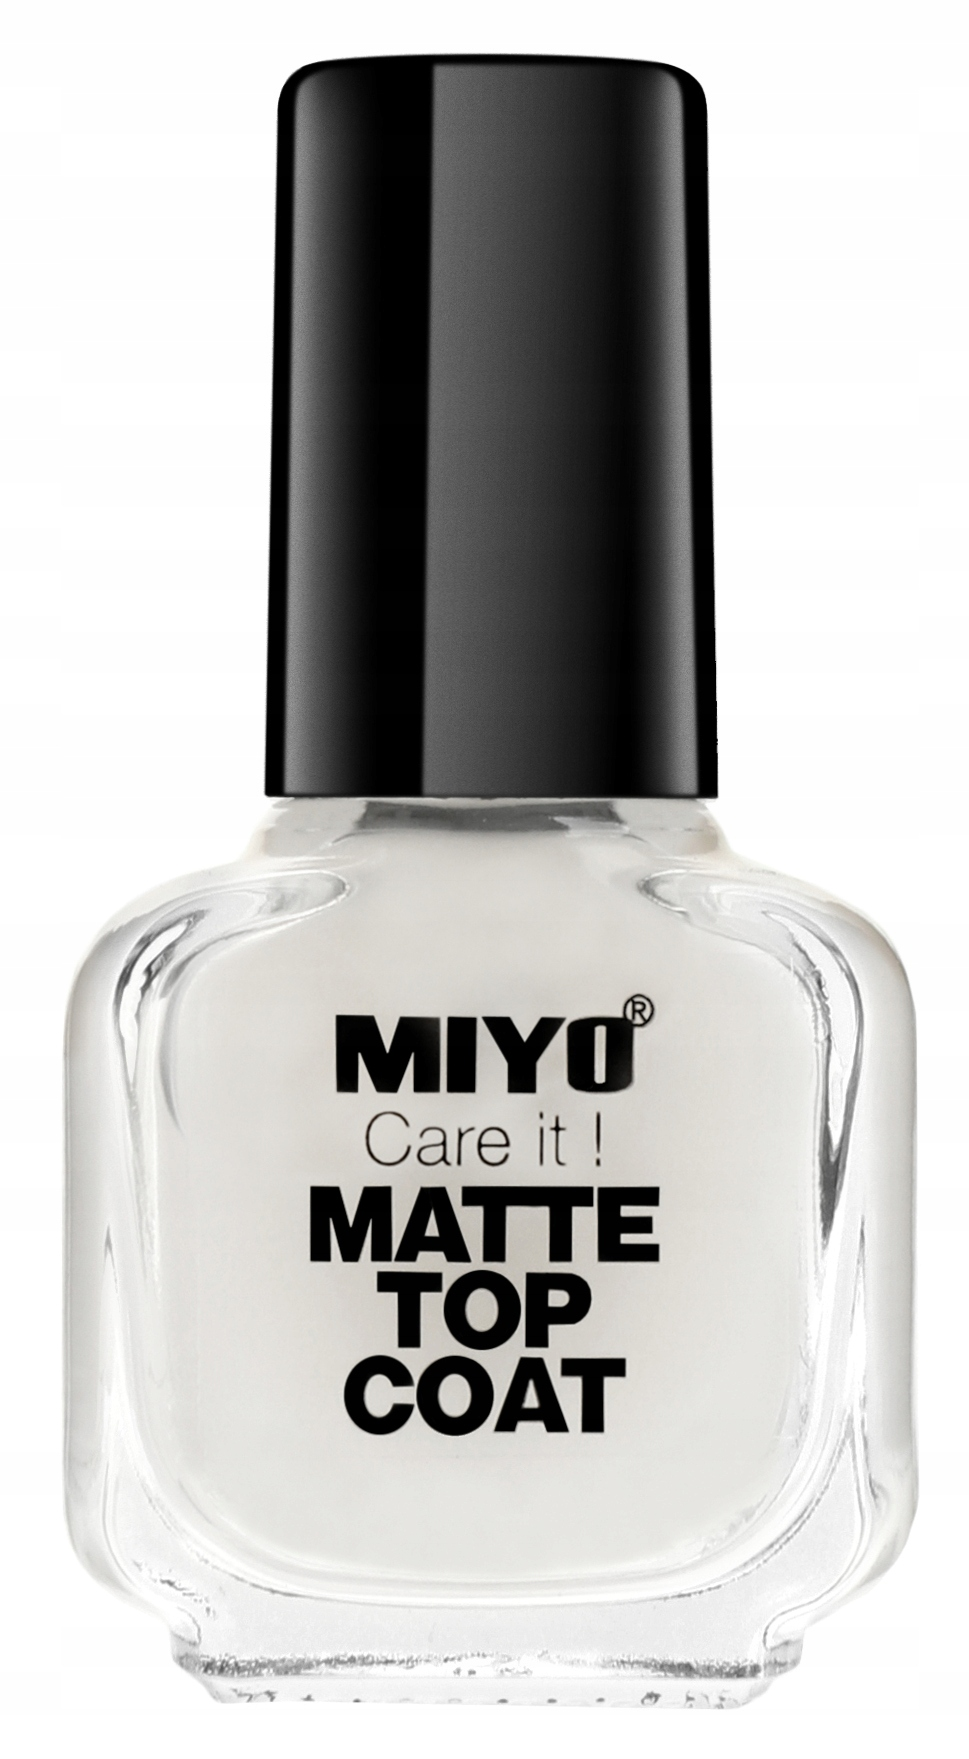 MIYO - Care it! MATTE TOP COAT - Matowy lakier